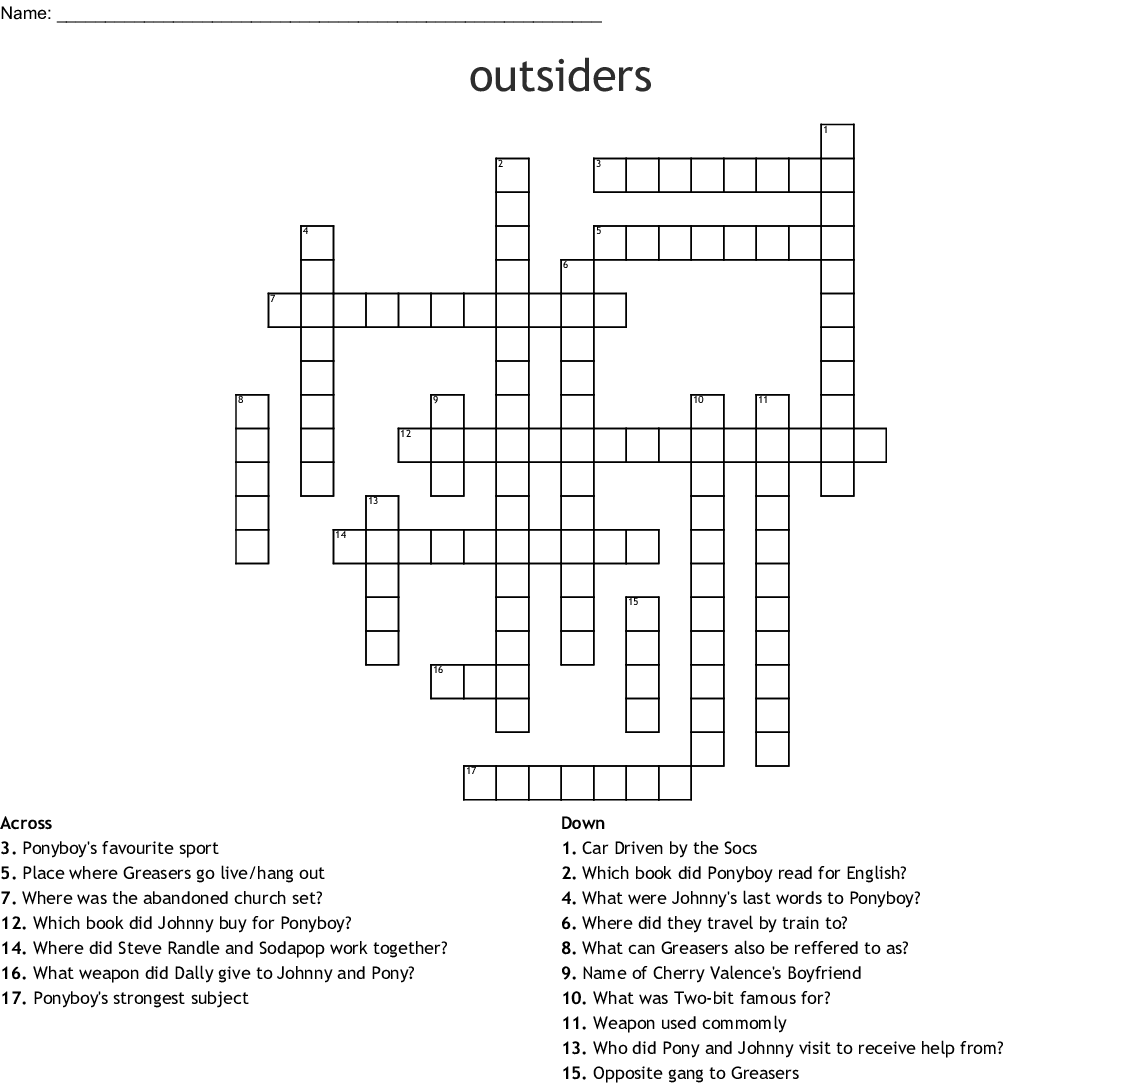 Outsiders Crossword Puzzle